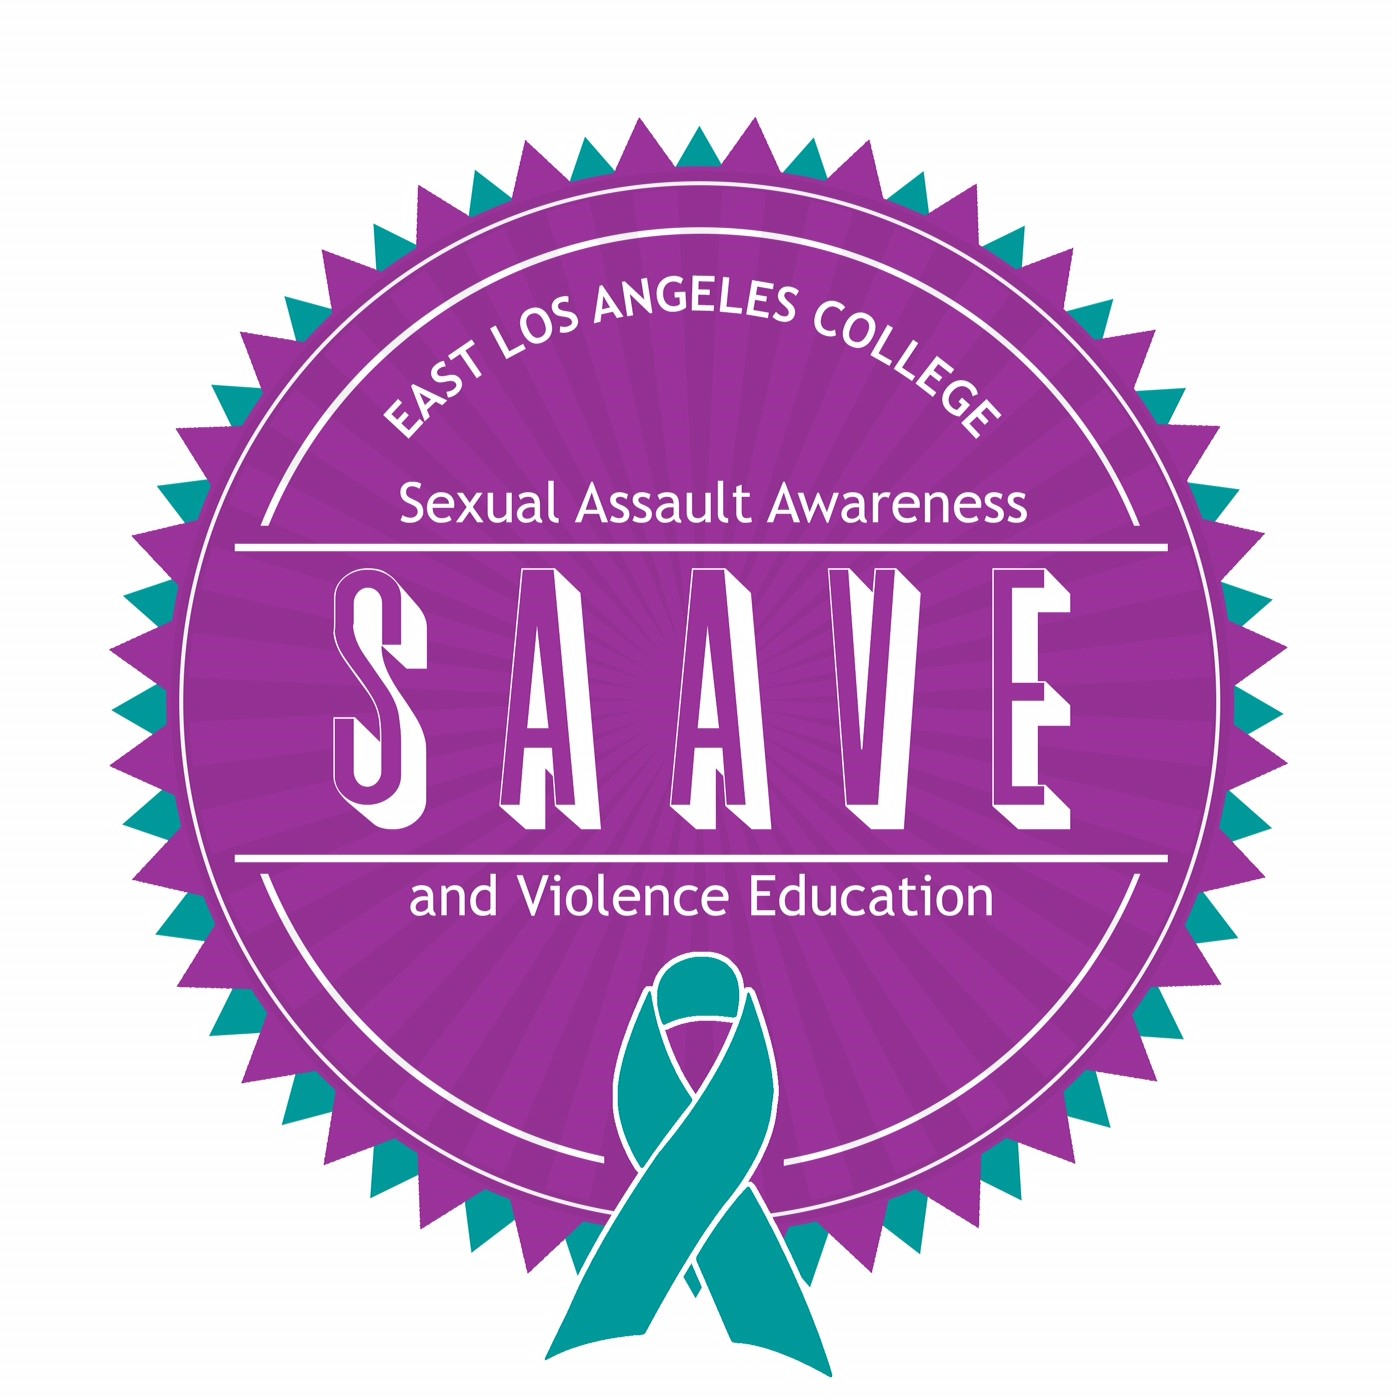 Logo of Sexual Assault Awareness